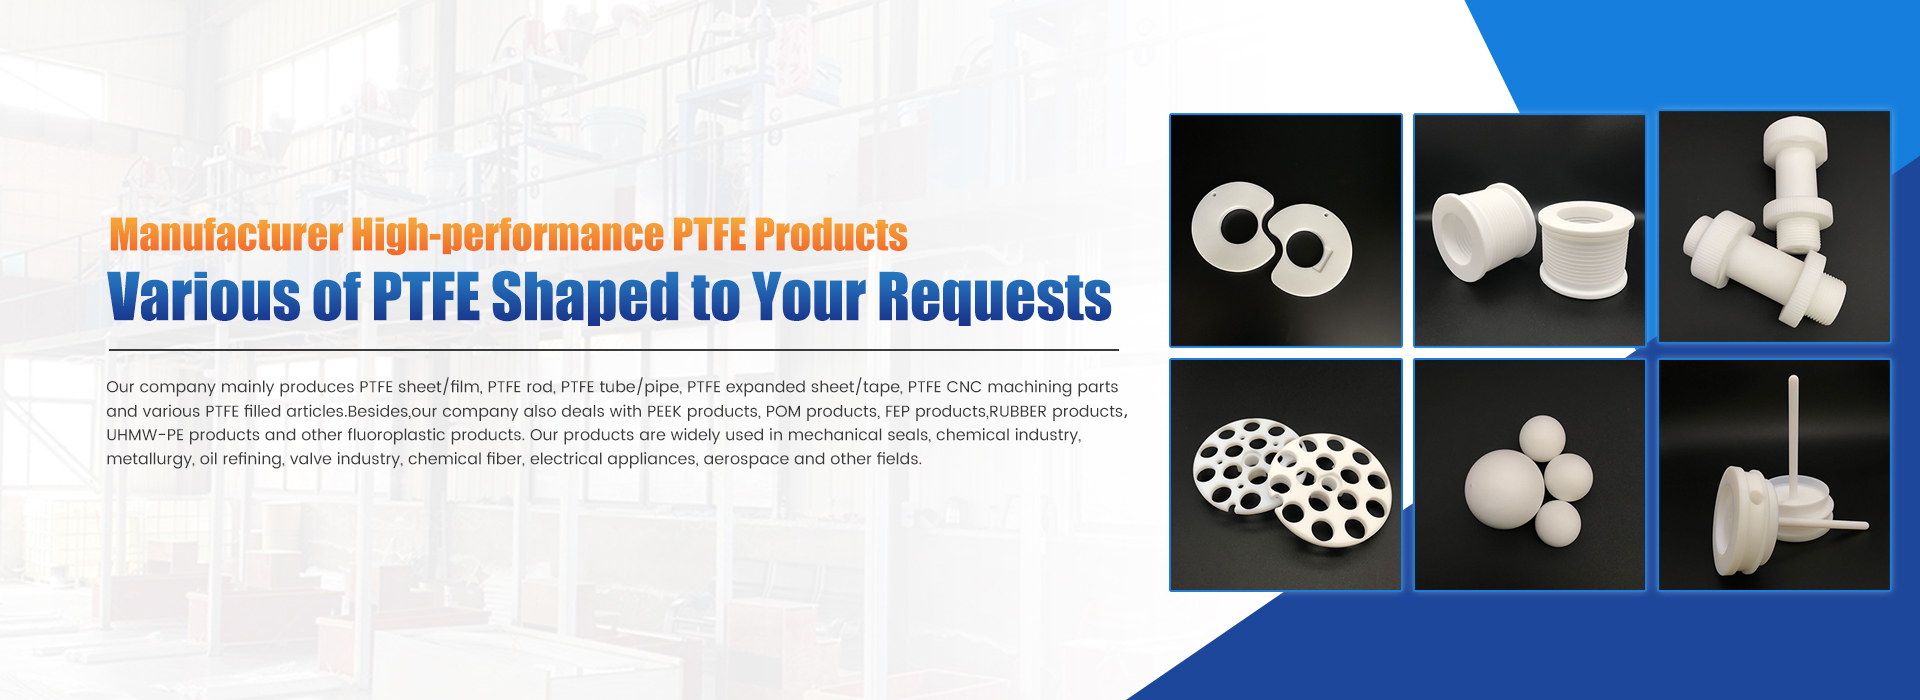 Various of PTFE Shaped To Your Requests Banner 0201